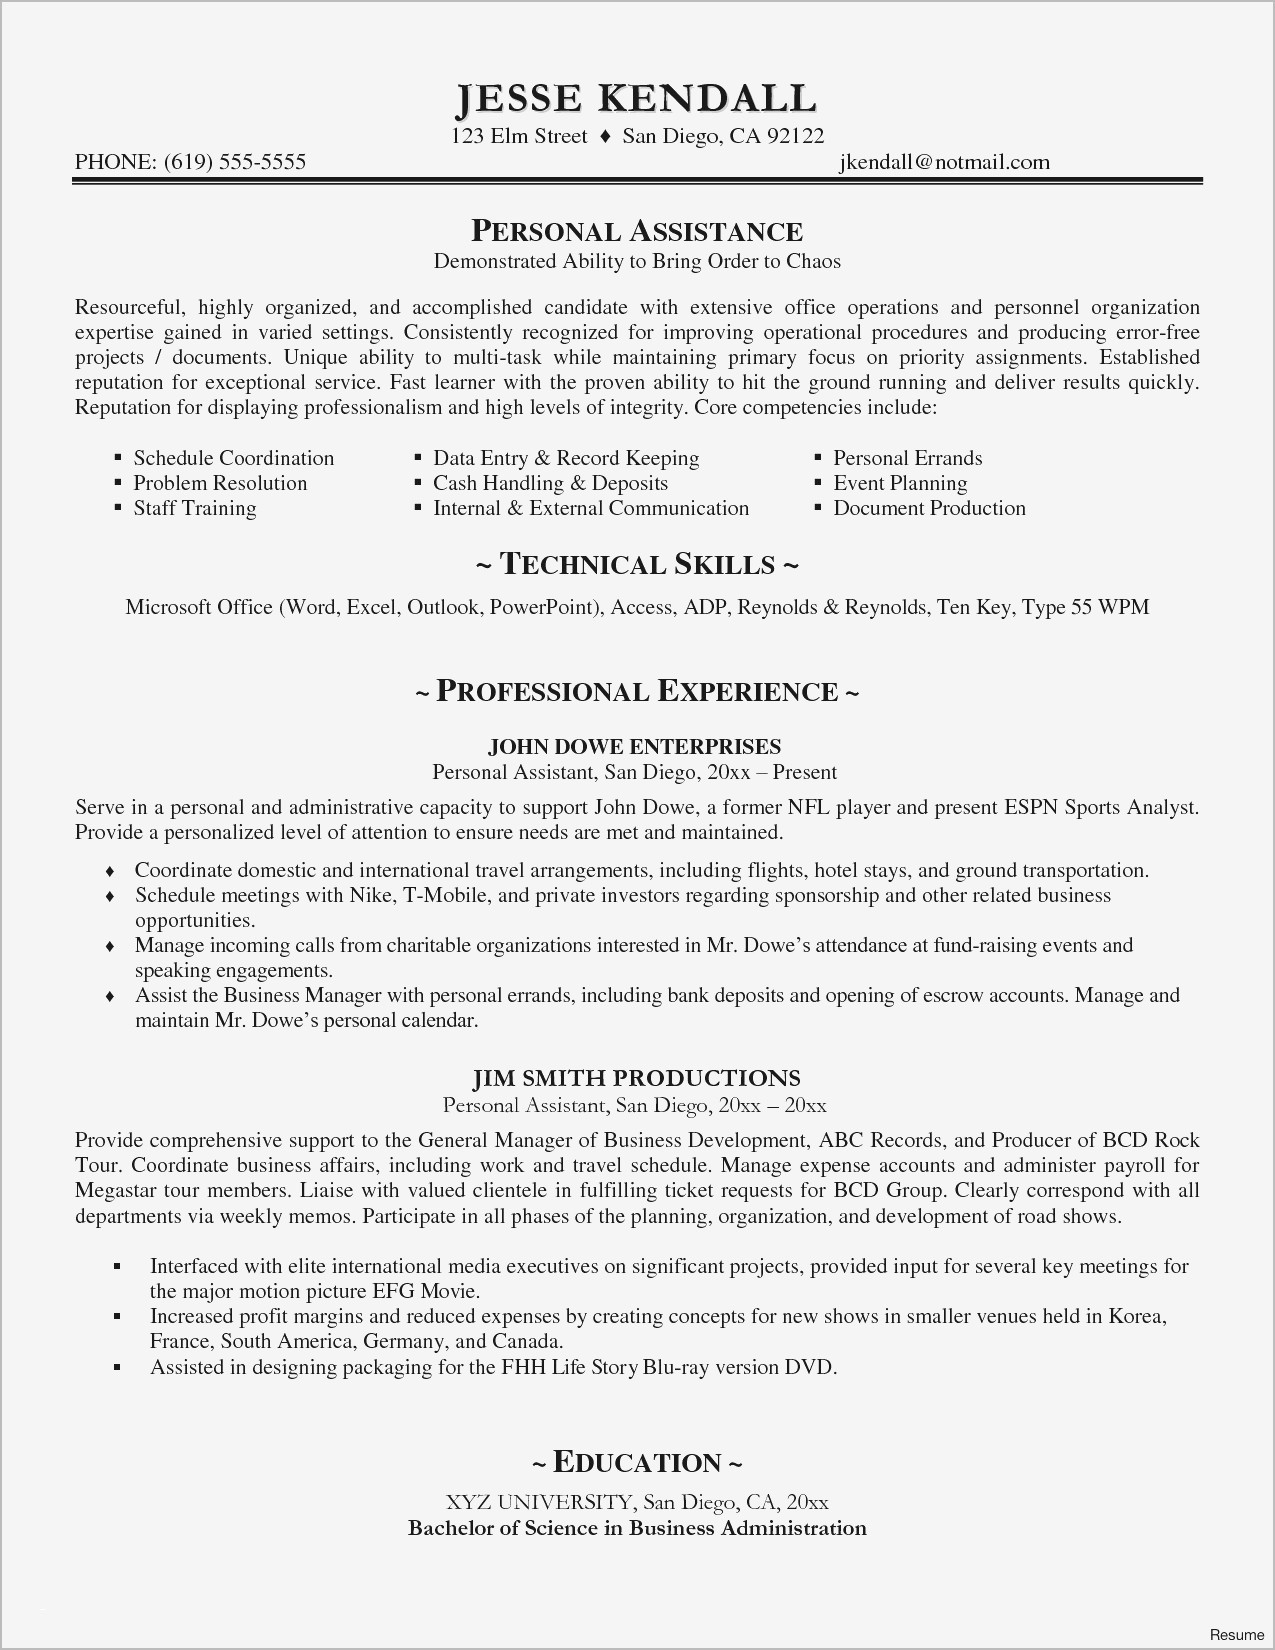 Resume Writer San Diego - Professional Resume Writers for Nurses Best Sample Nursing Resumes